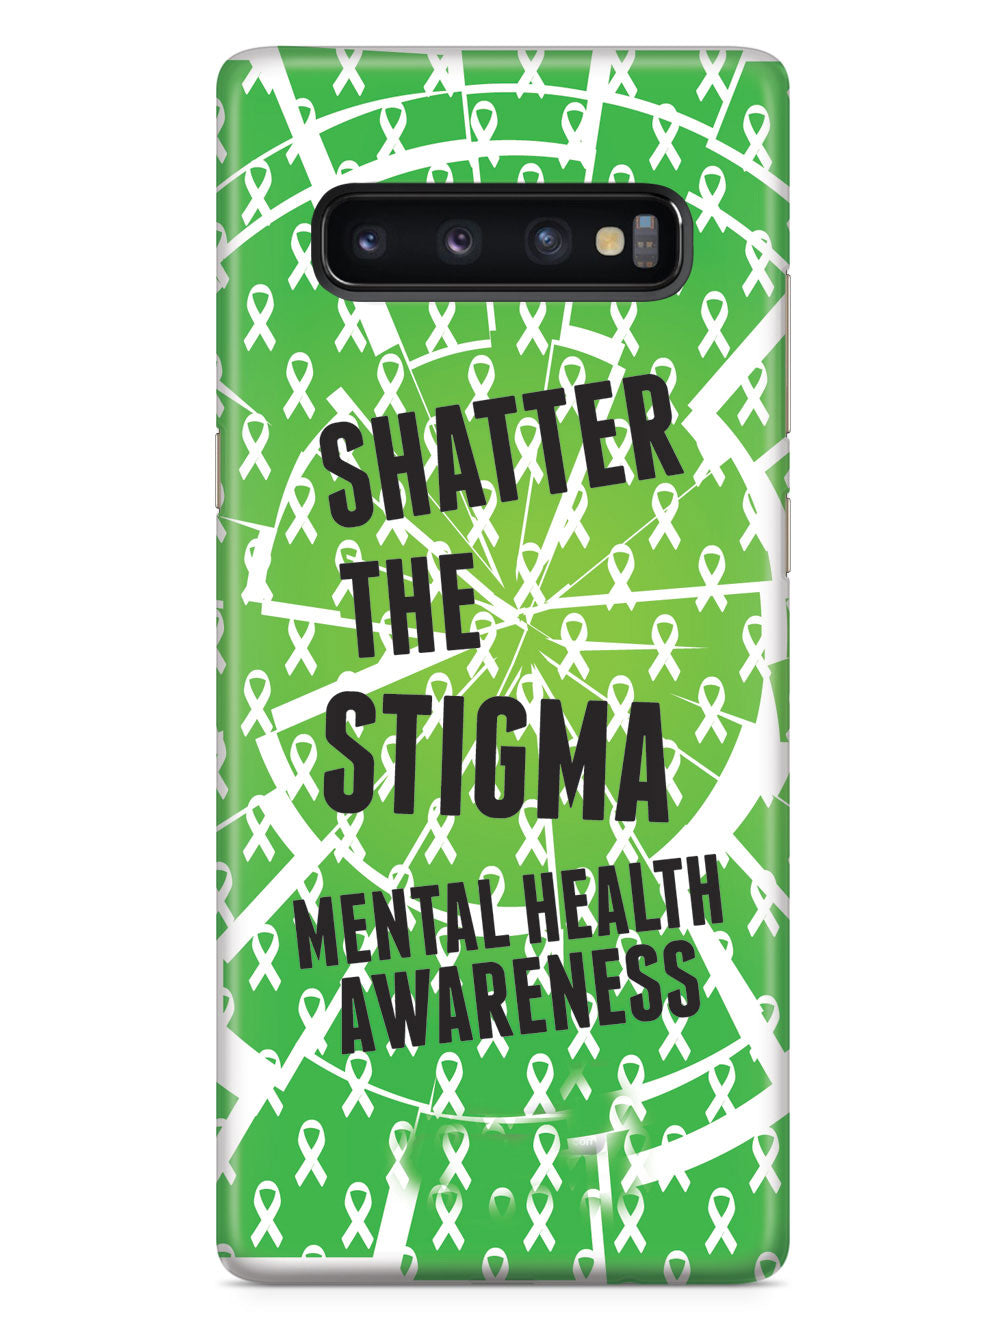 Shatter the Stigma - Mental Health Awareness Case